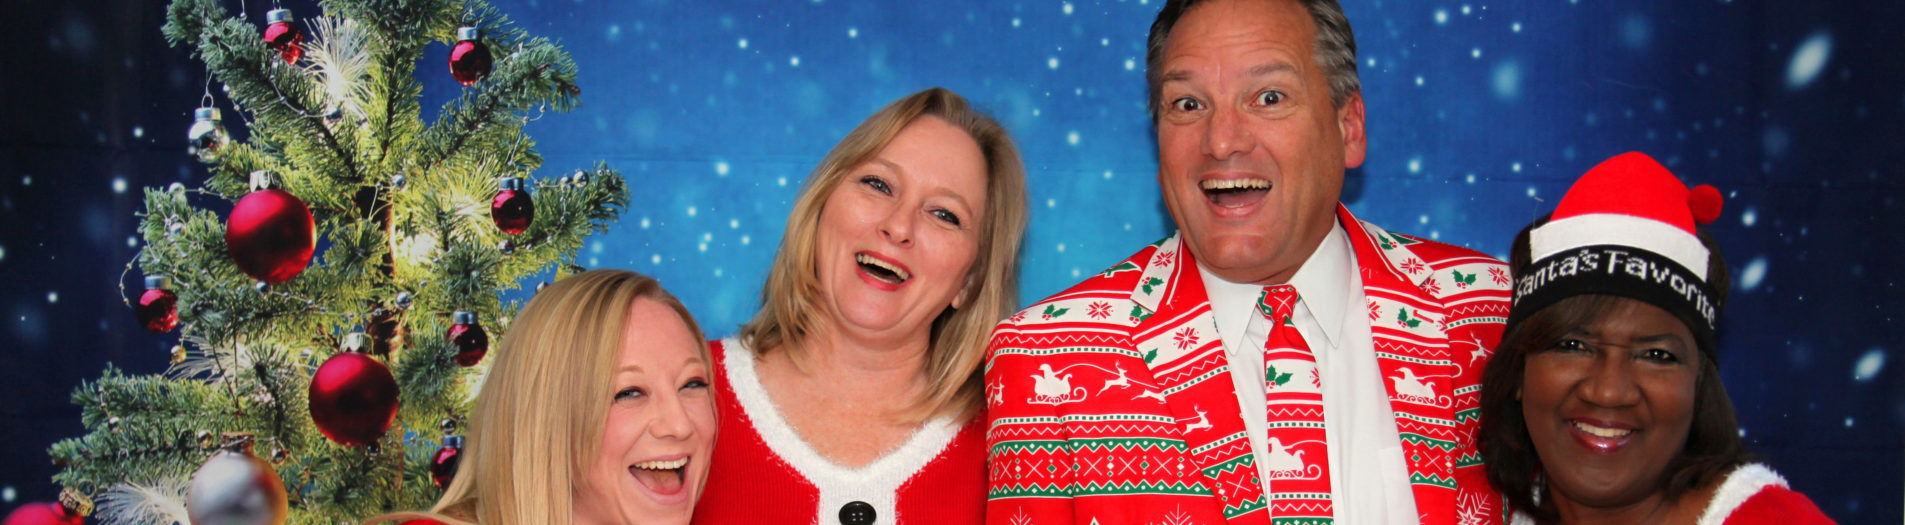 Maitland Law Firm got into the spirit at their 14th Annual Holiday Open House.